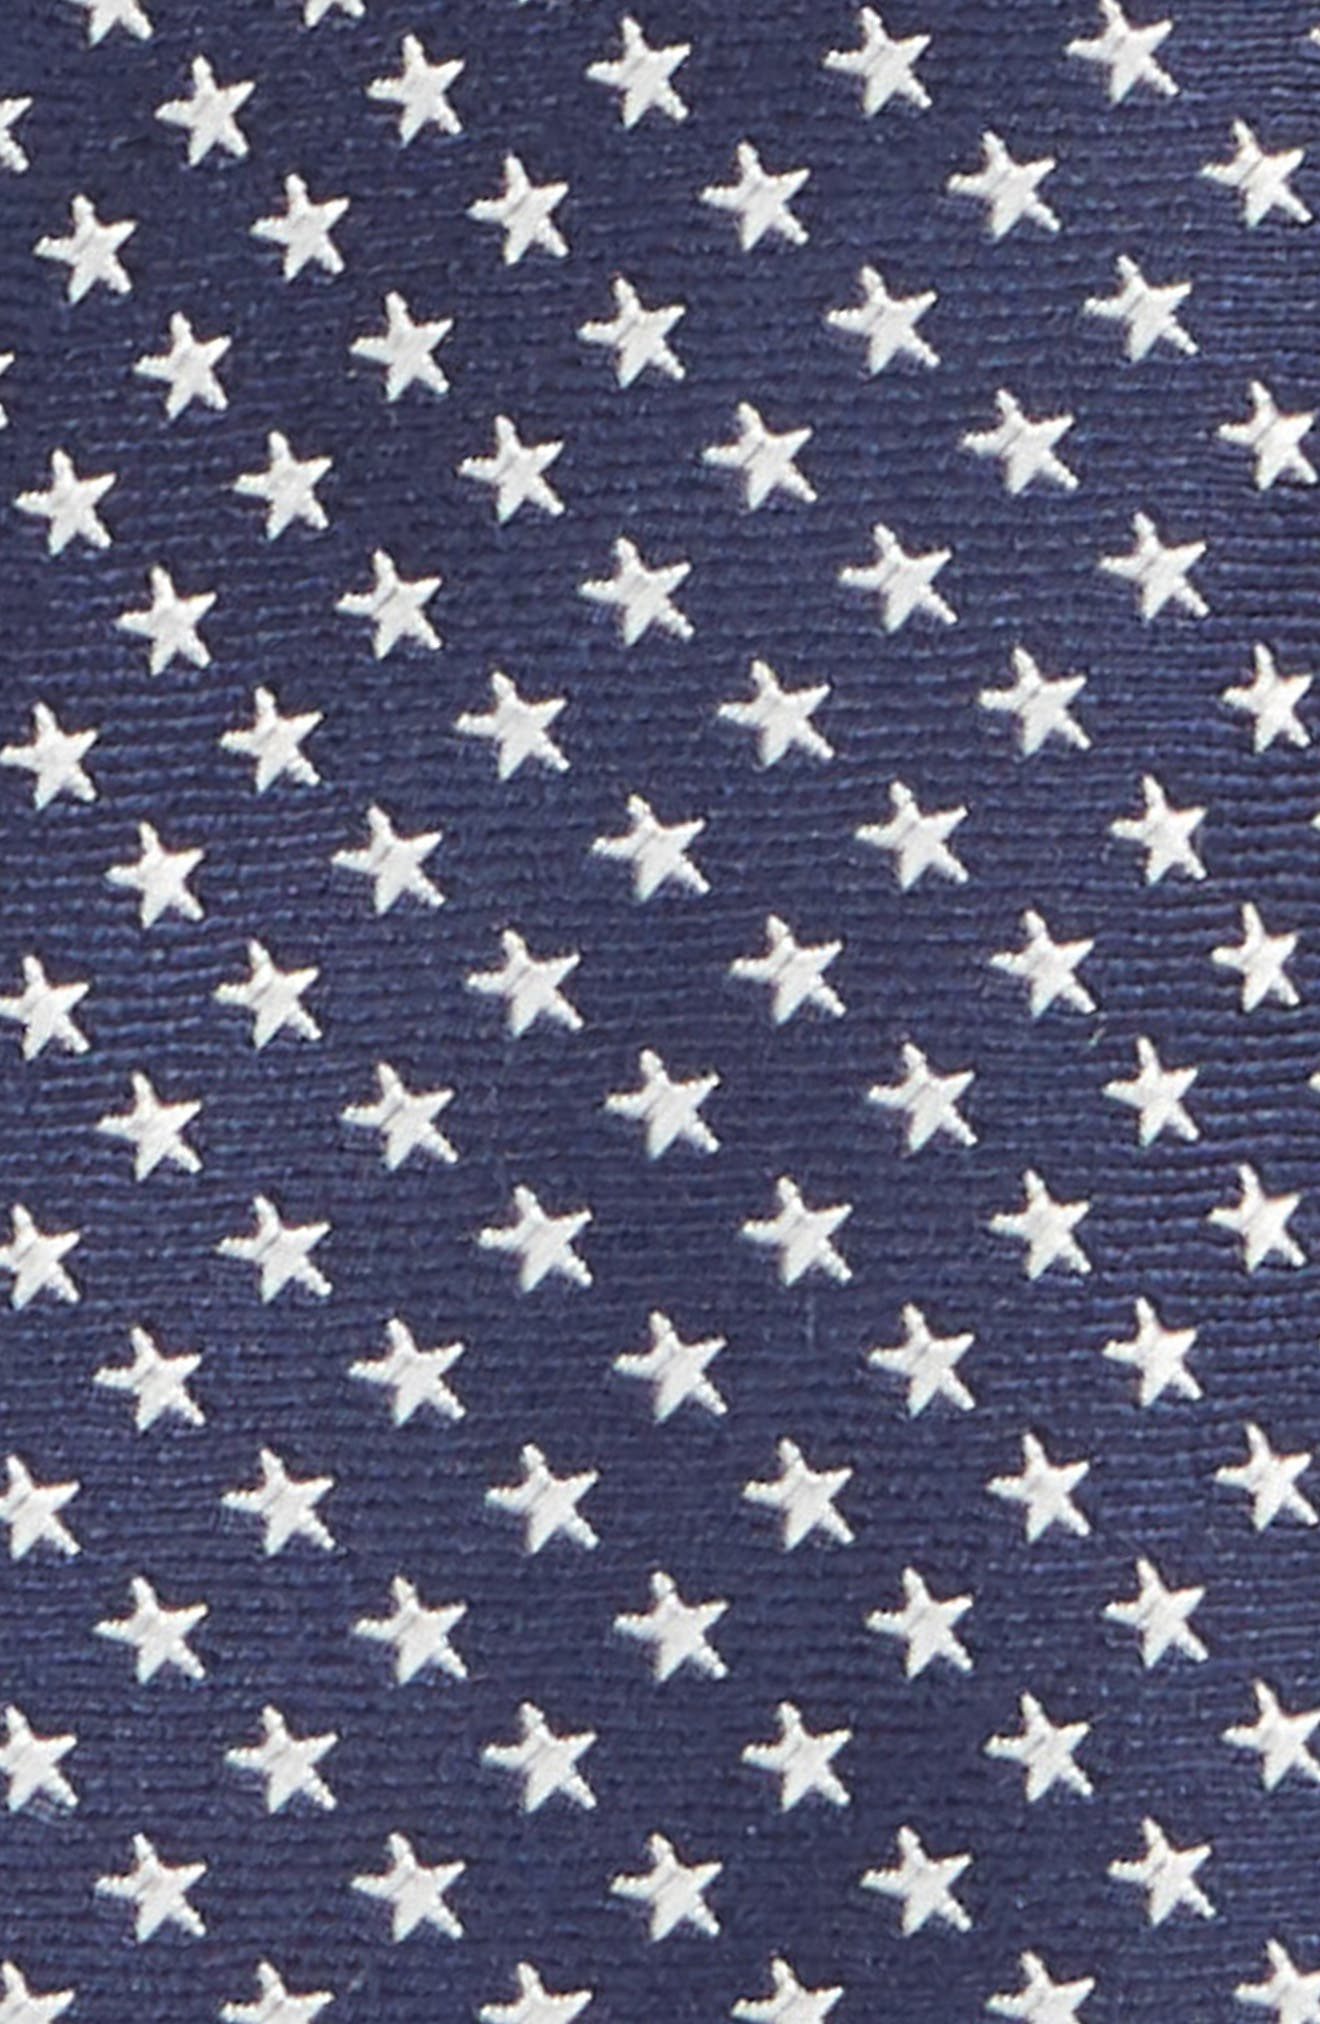 Stella Americana Silk Tie,                             Alternate thumbnail 2, color,